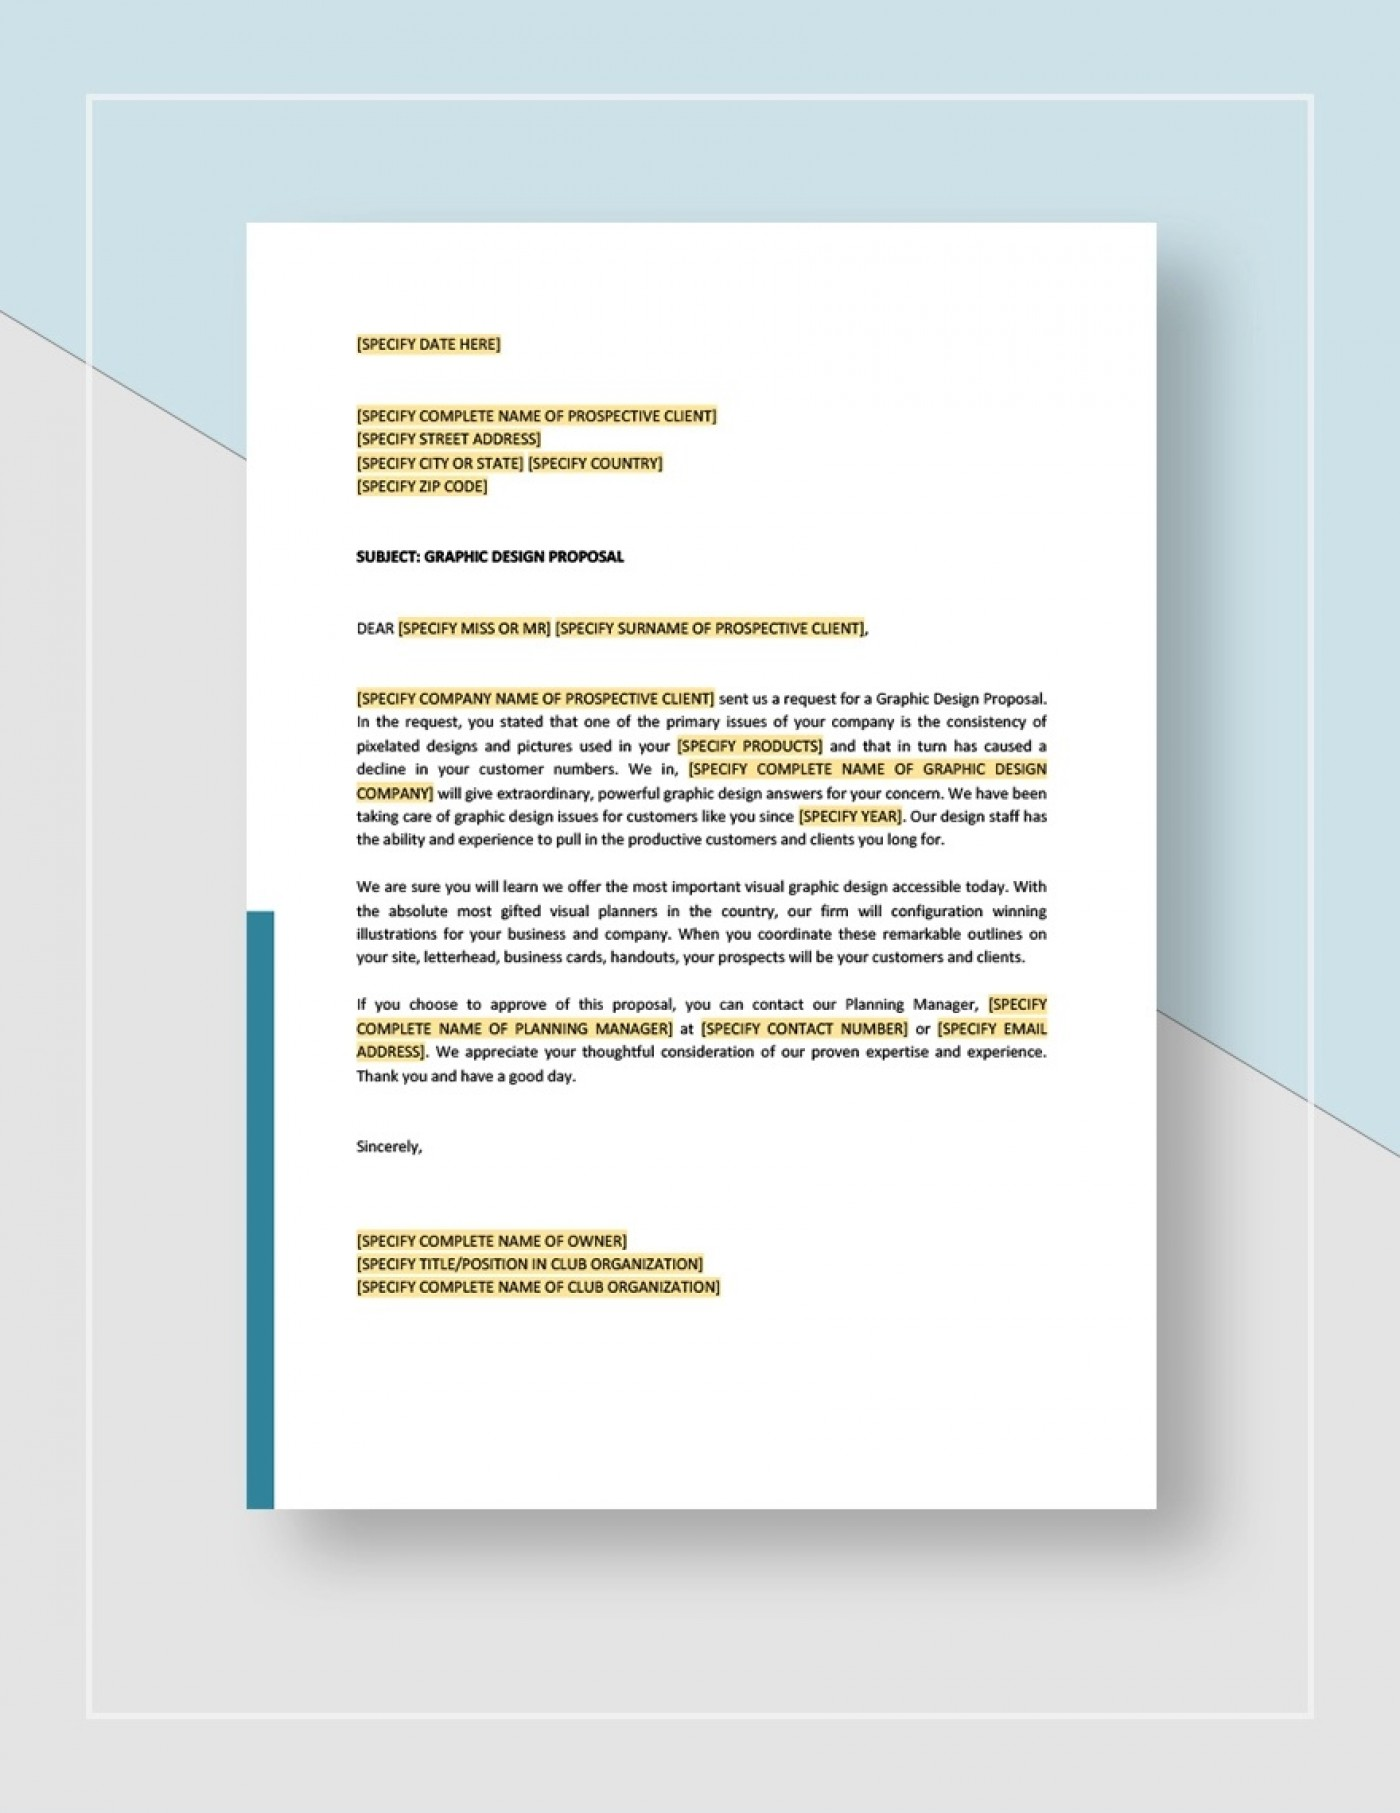 Graphic Design Proposal Template Sample Idea Jpg  Free Freelance1400